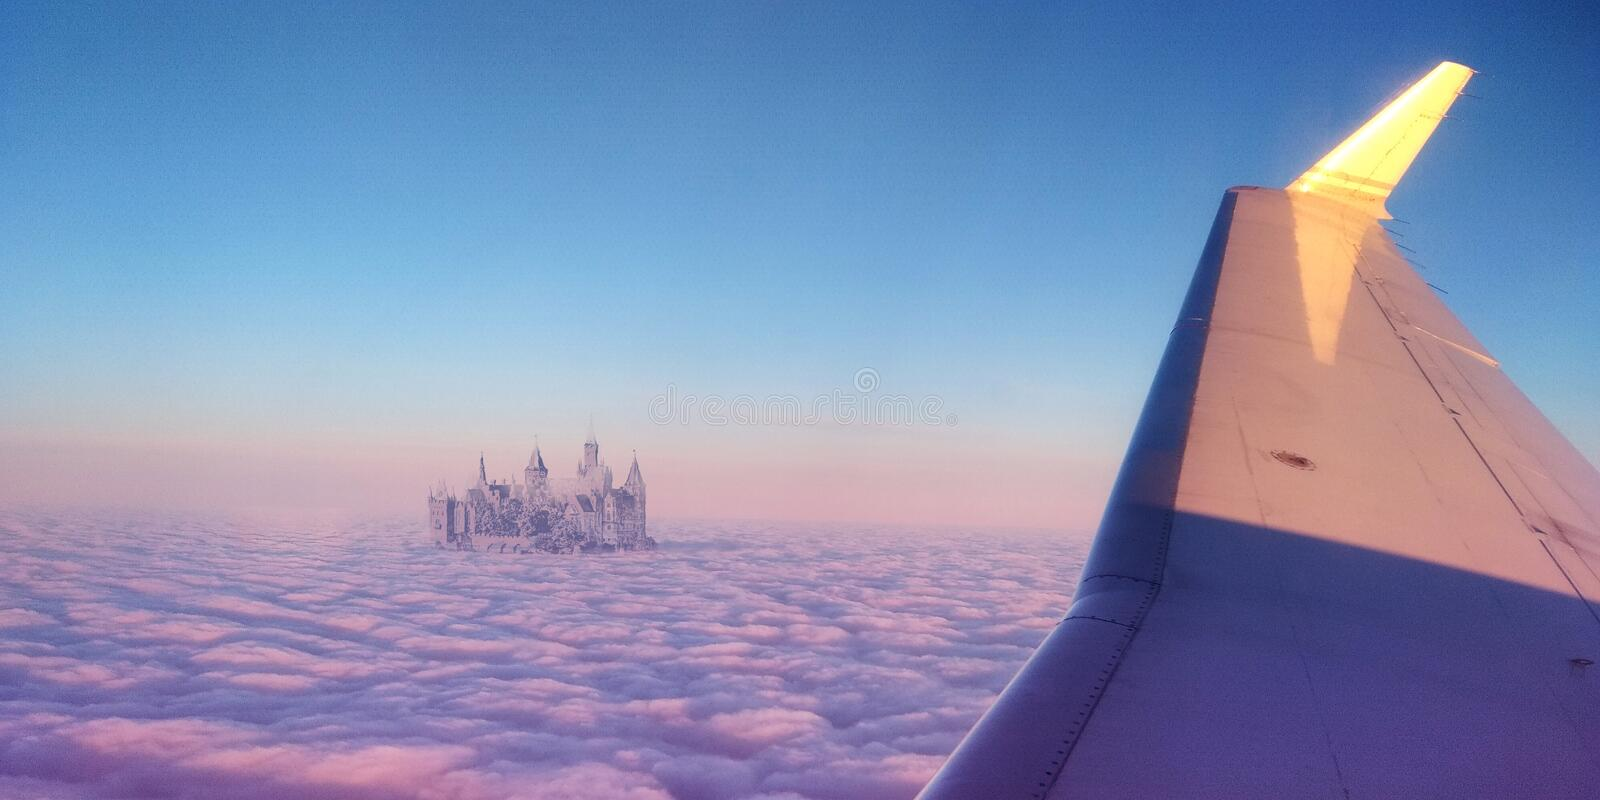 Castle in the sky. View from a plane window royalty free stock photo